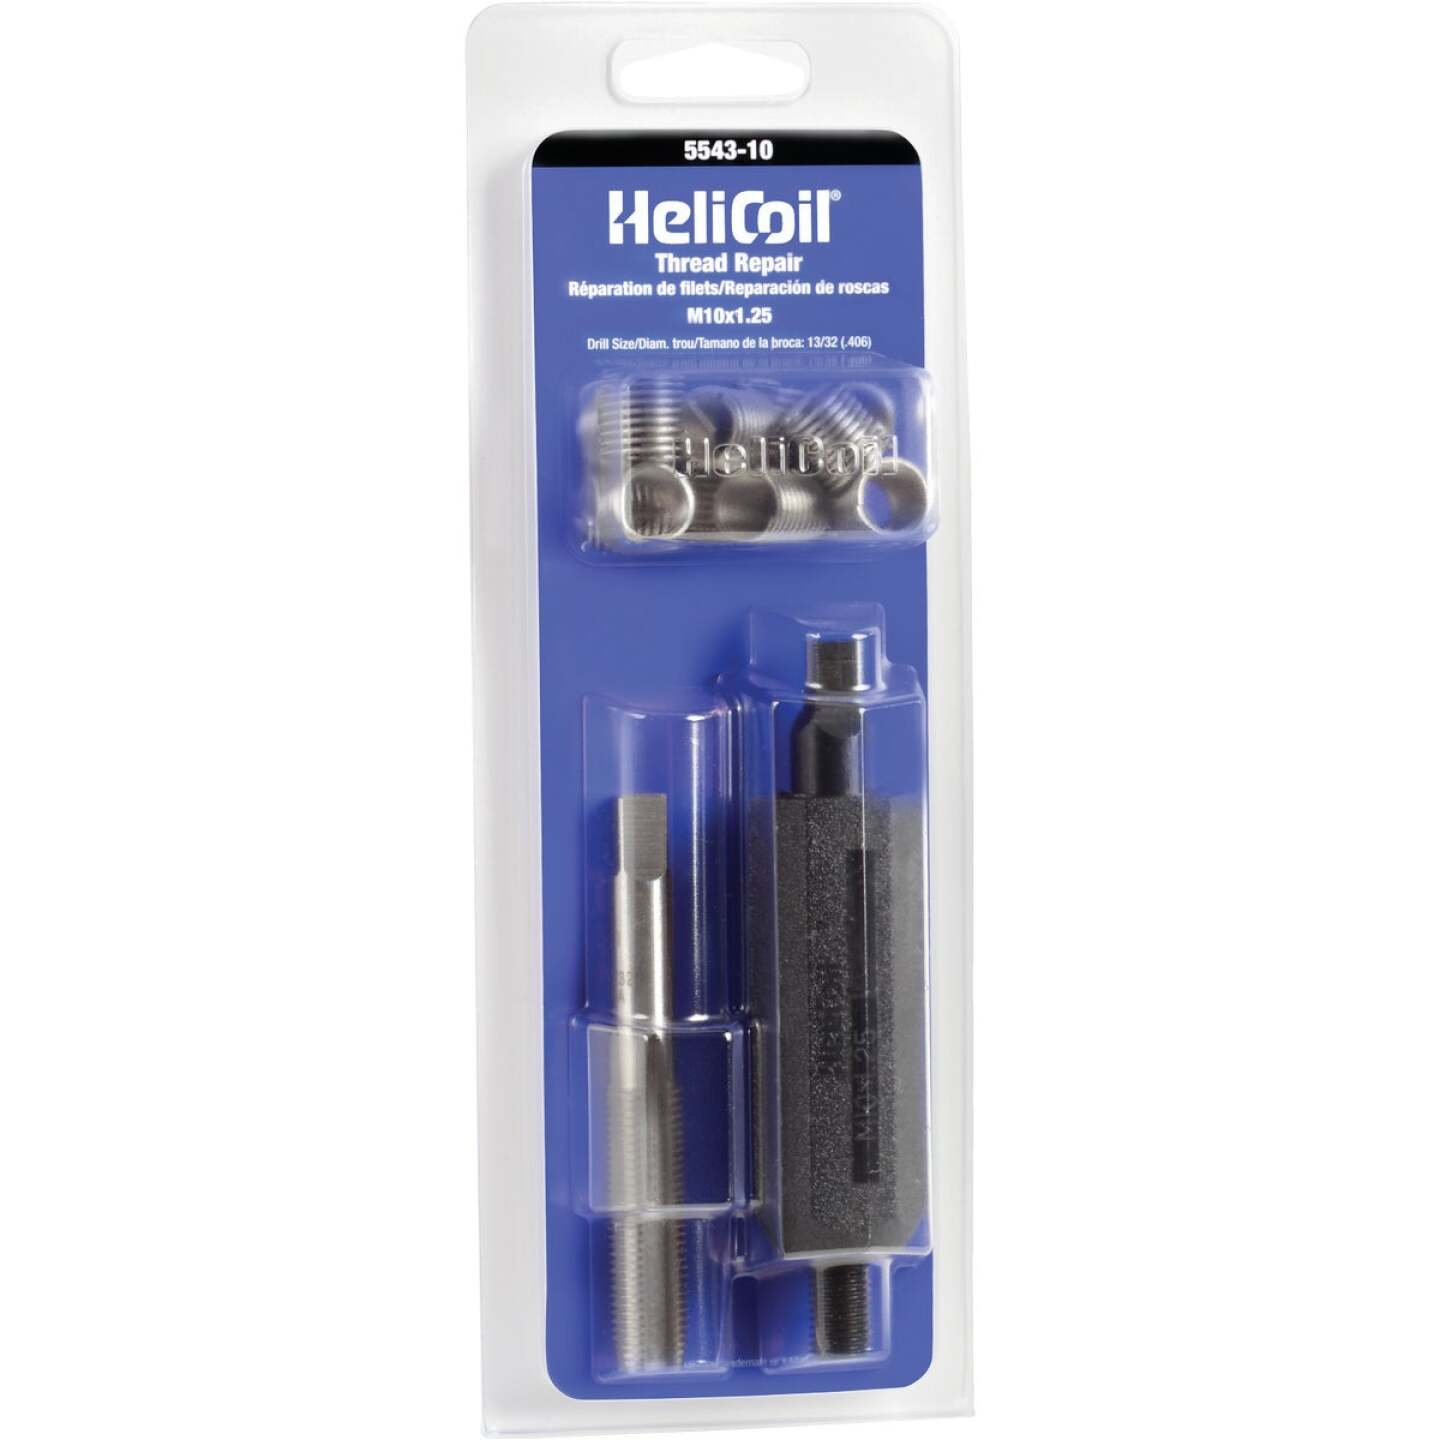 HeliCoil M10 x 1.25 Stainless Steel Thread Repair Kit Image 1